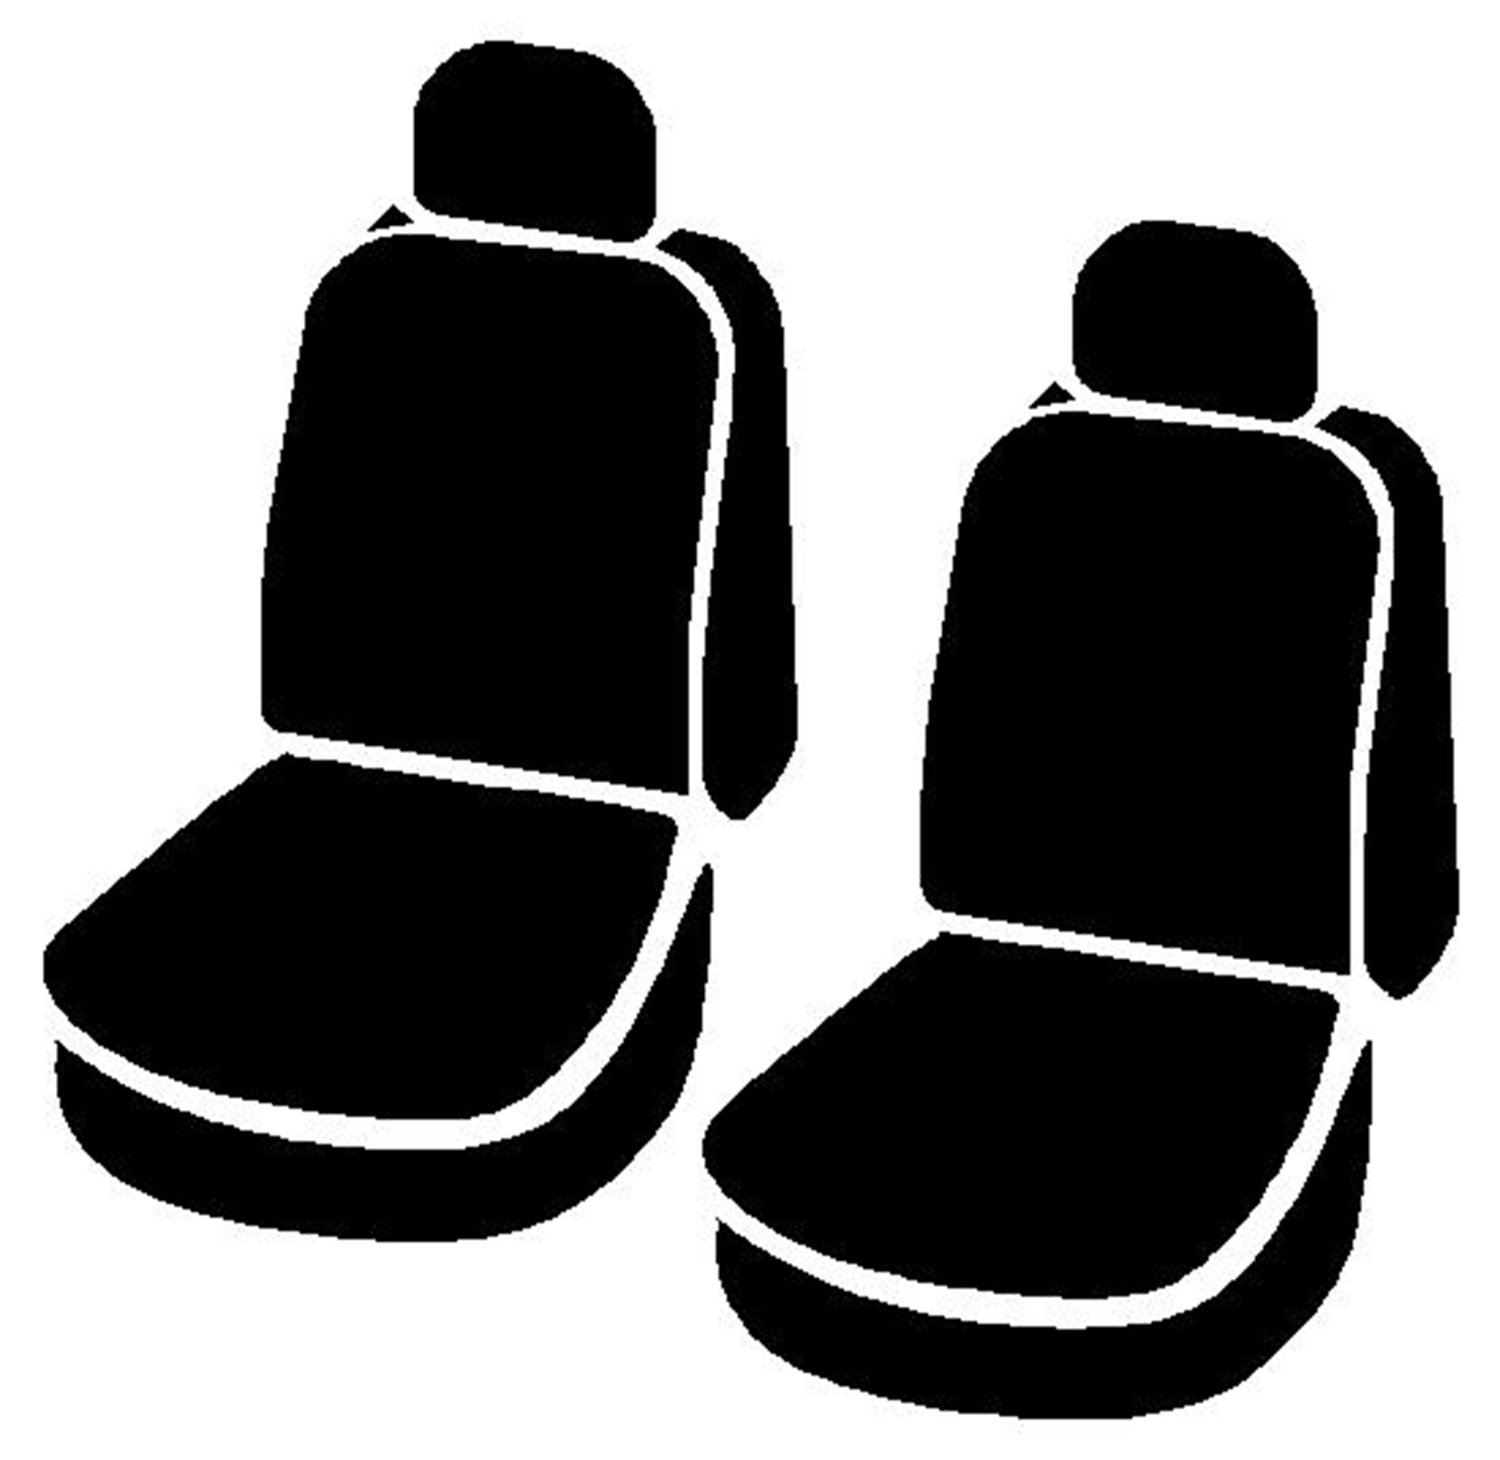 Charcoal Fia OE38-33 CHARC Custom Fit Front Seat Cover Bucket Seats Tweed,